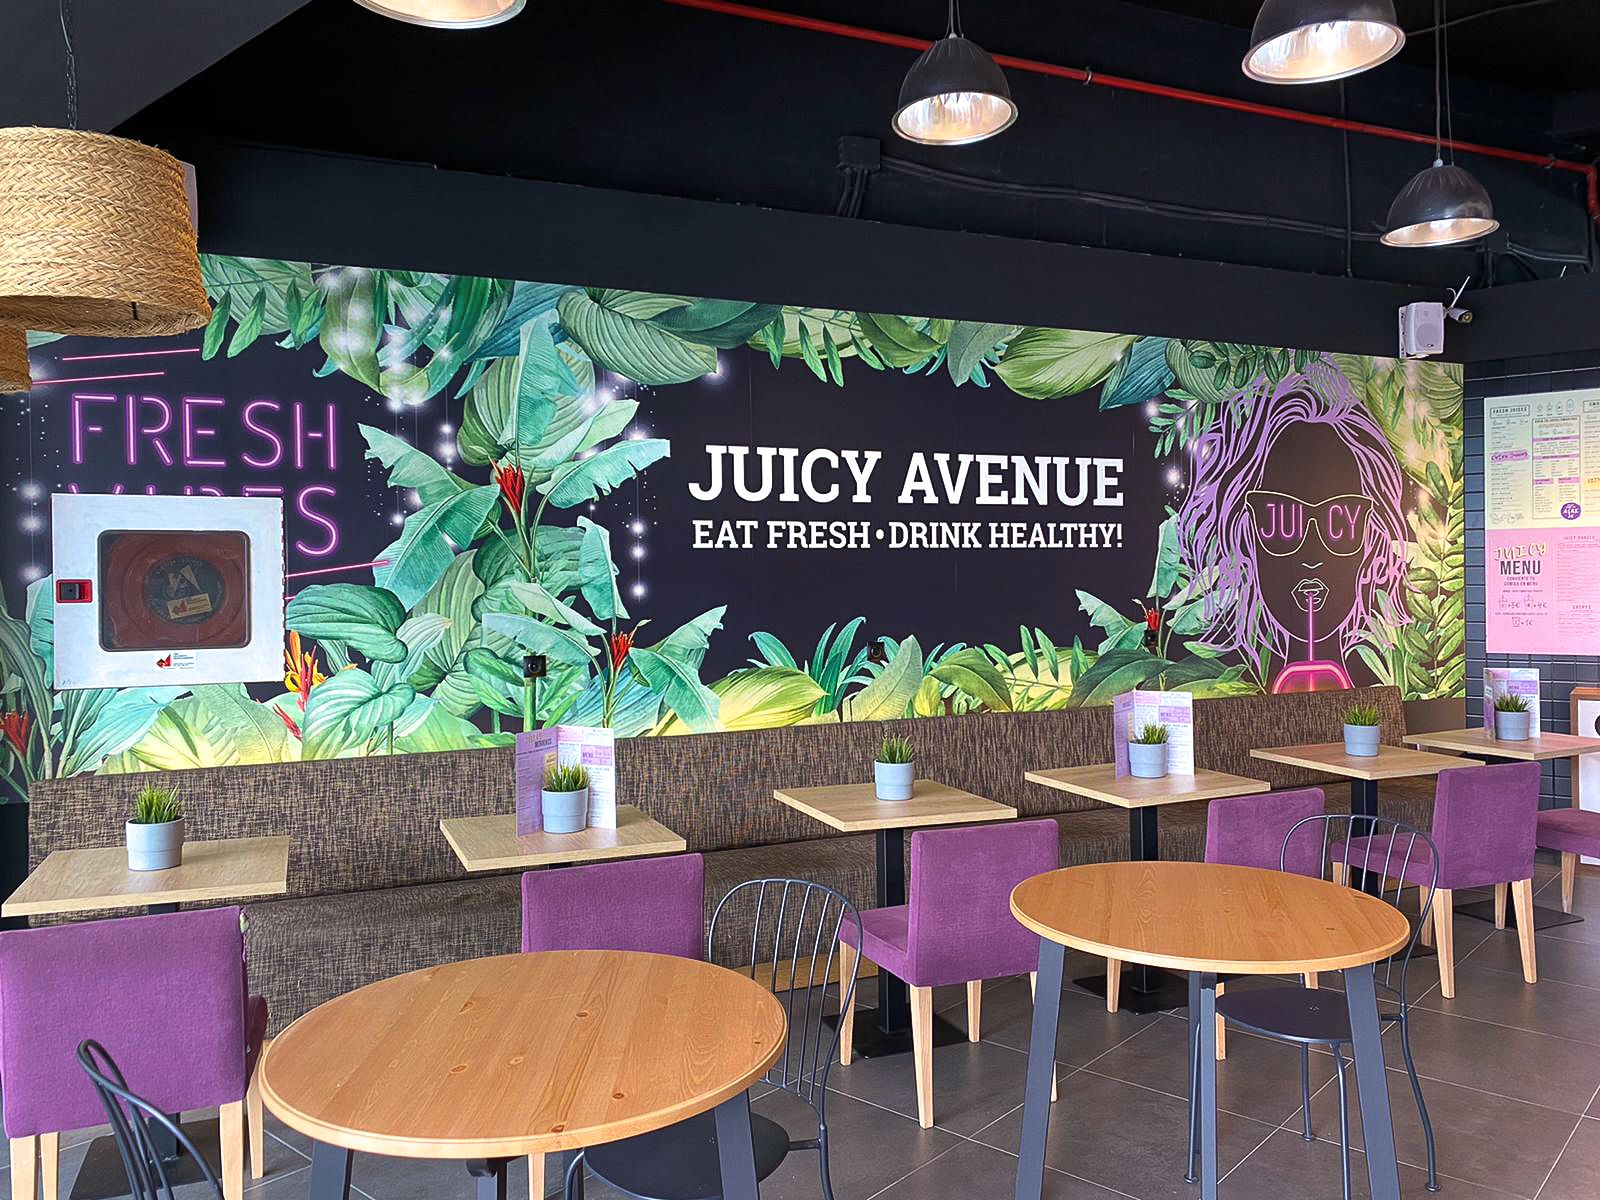 Juicy Avenue